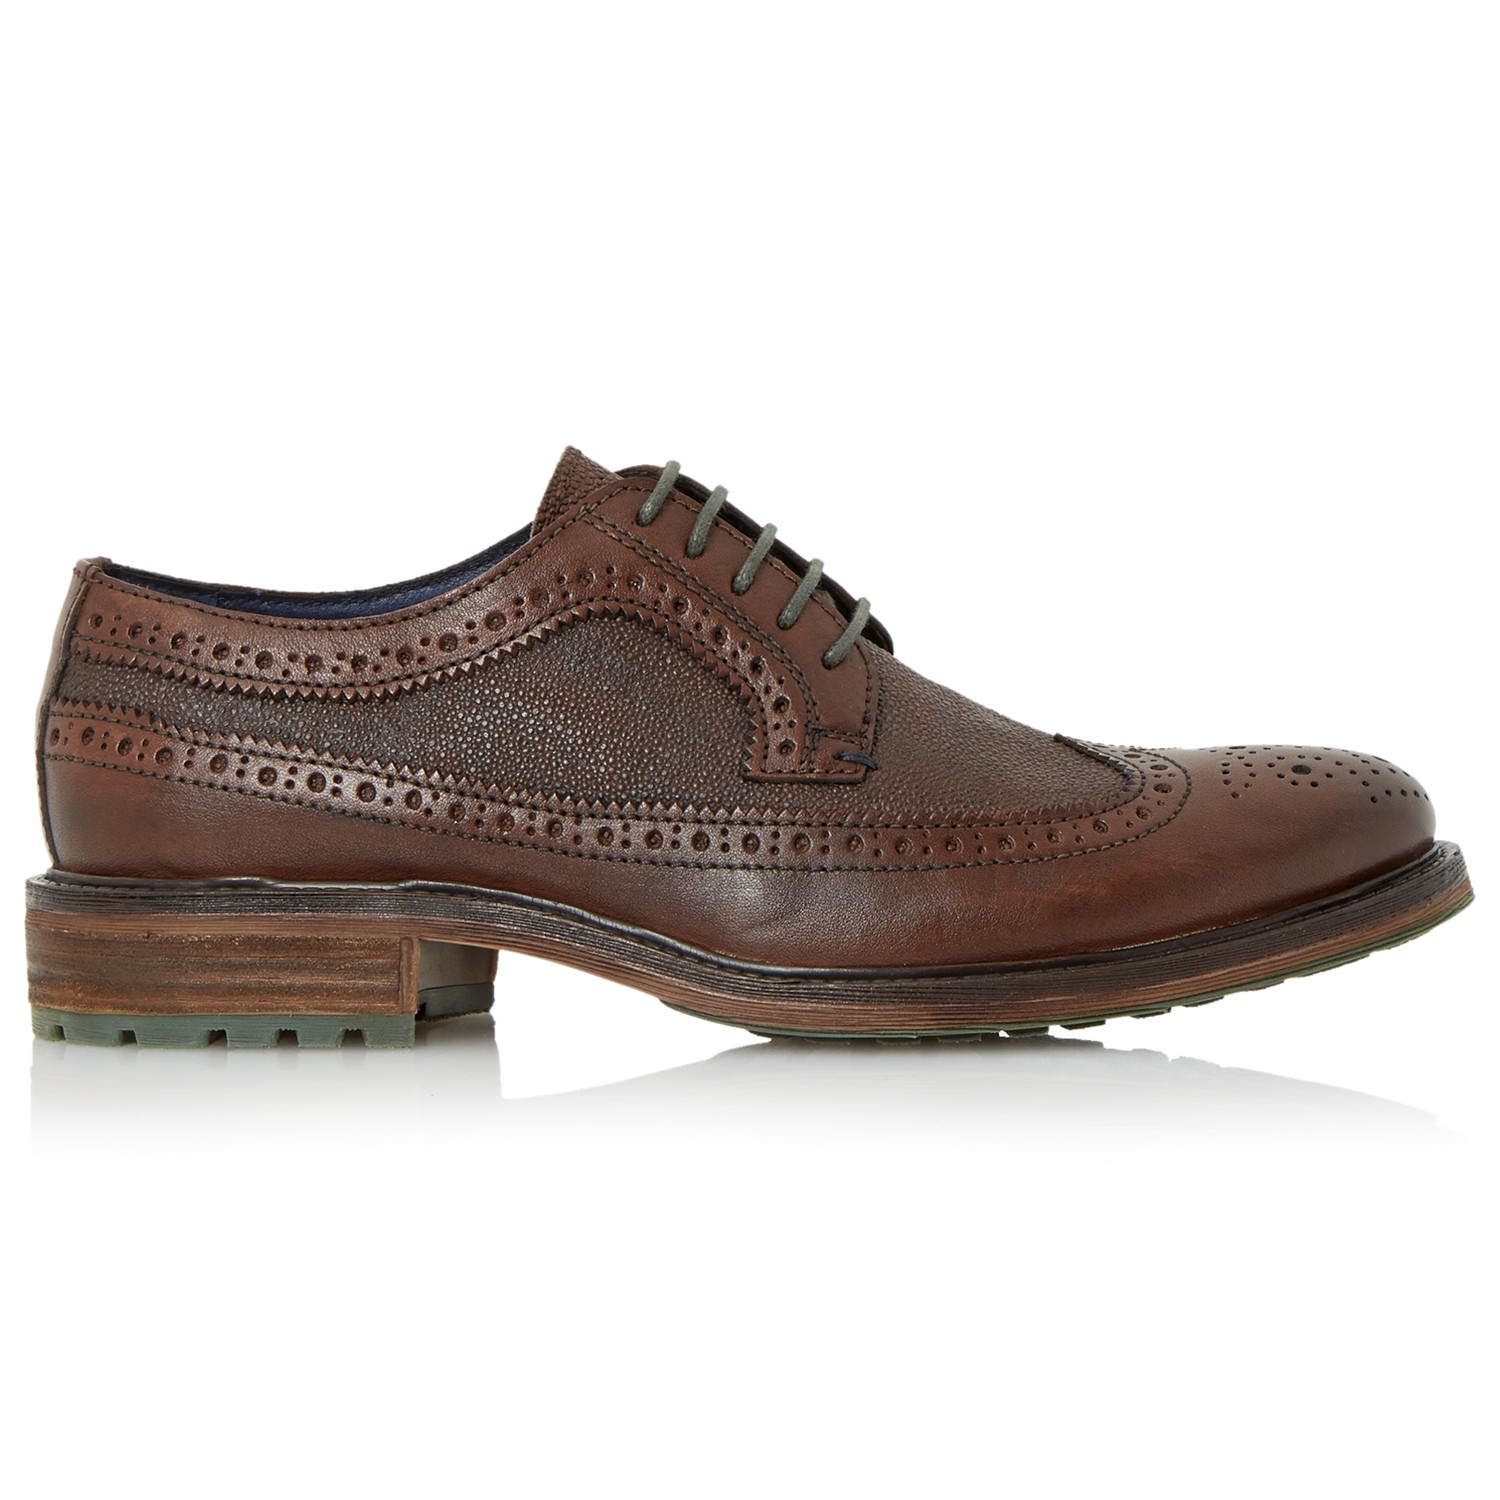 Dune Bongo Chunky Sole Leather Brogues in Brown for Men